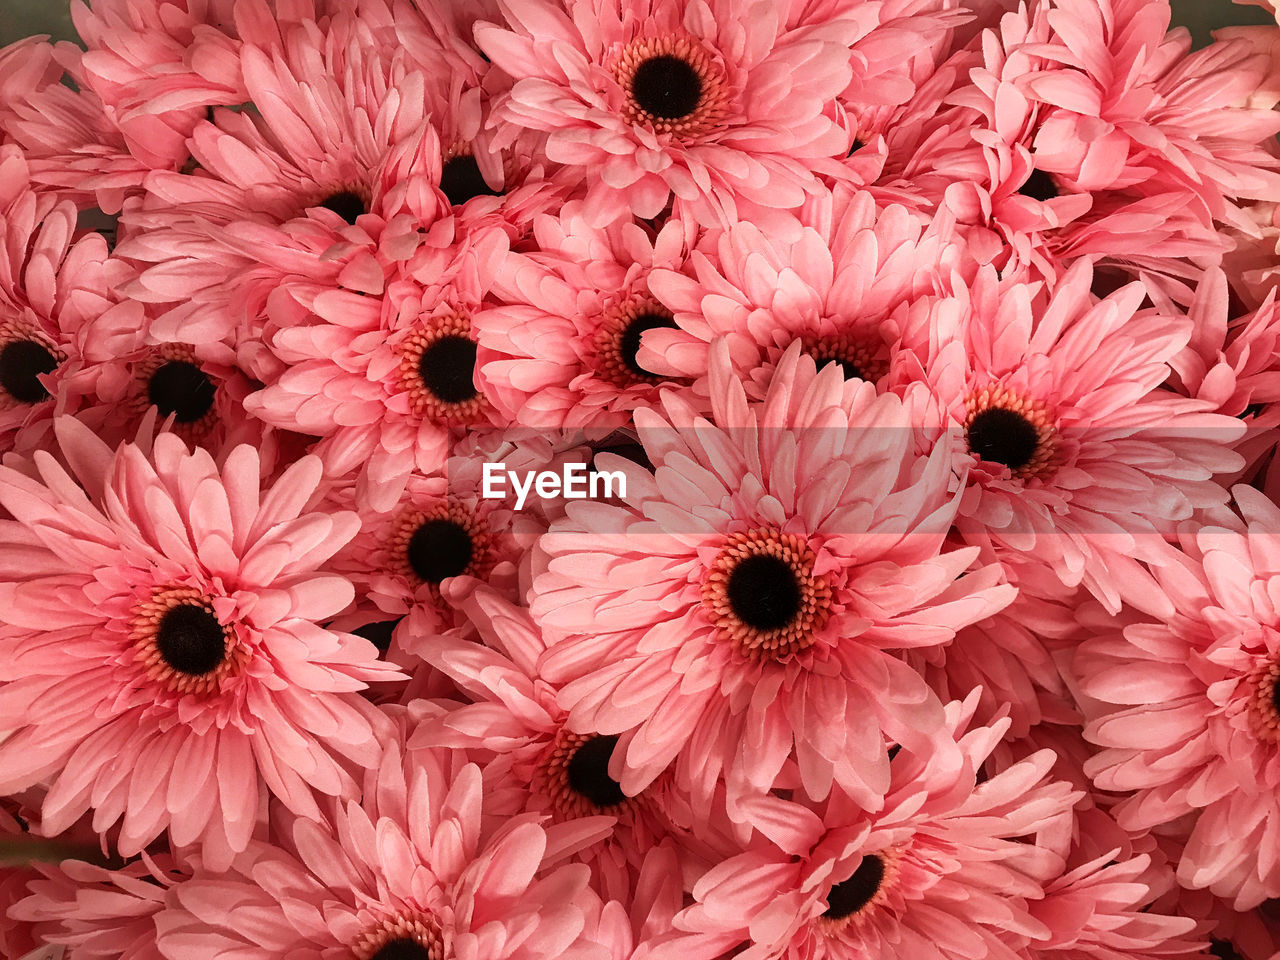 flower, flowering plant, petal, full frame, freshness, vulnerability, flower head, fragility, pink color, inflorescence, backgrounds, close-up, beauty in nature, plant, no people, growth, gerbera daisy, day, nature, abundance